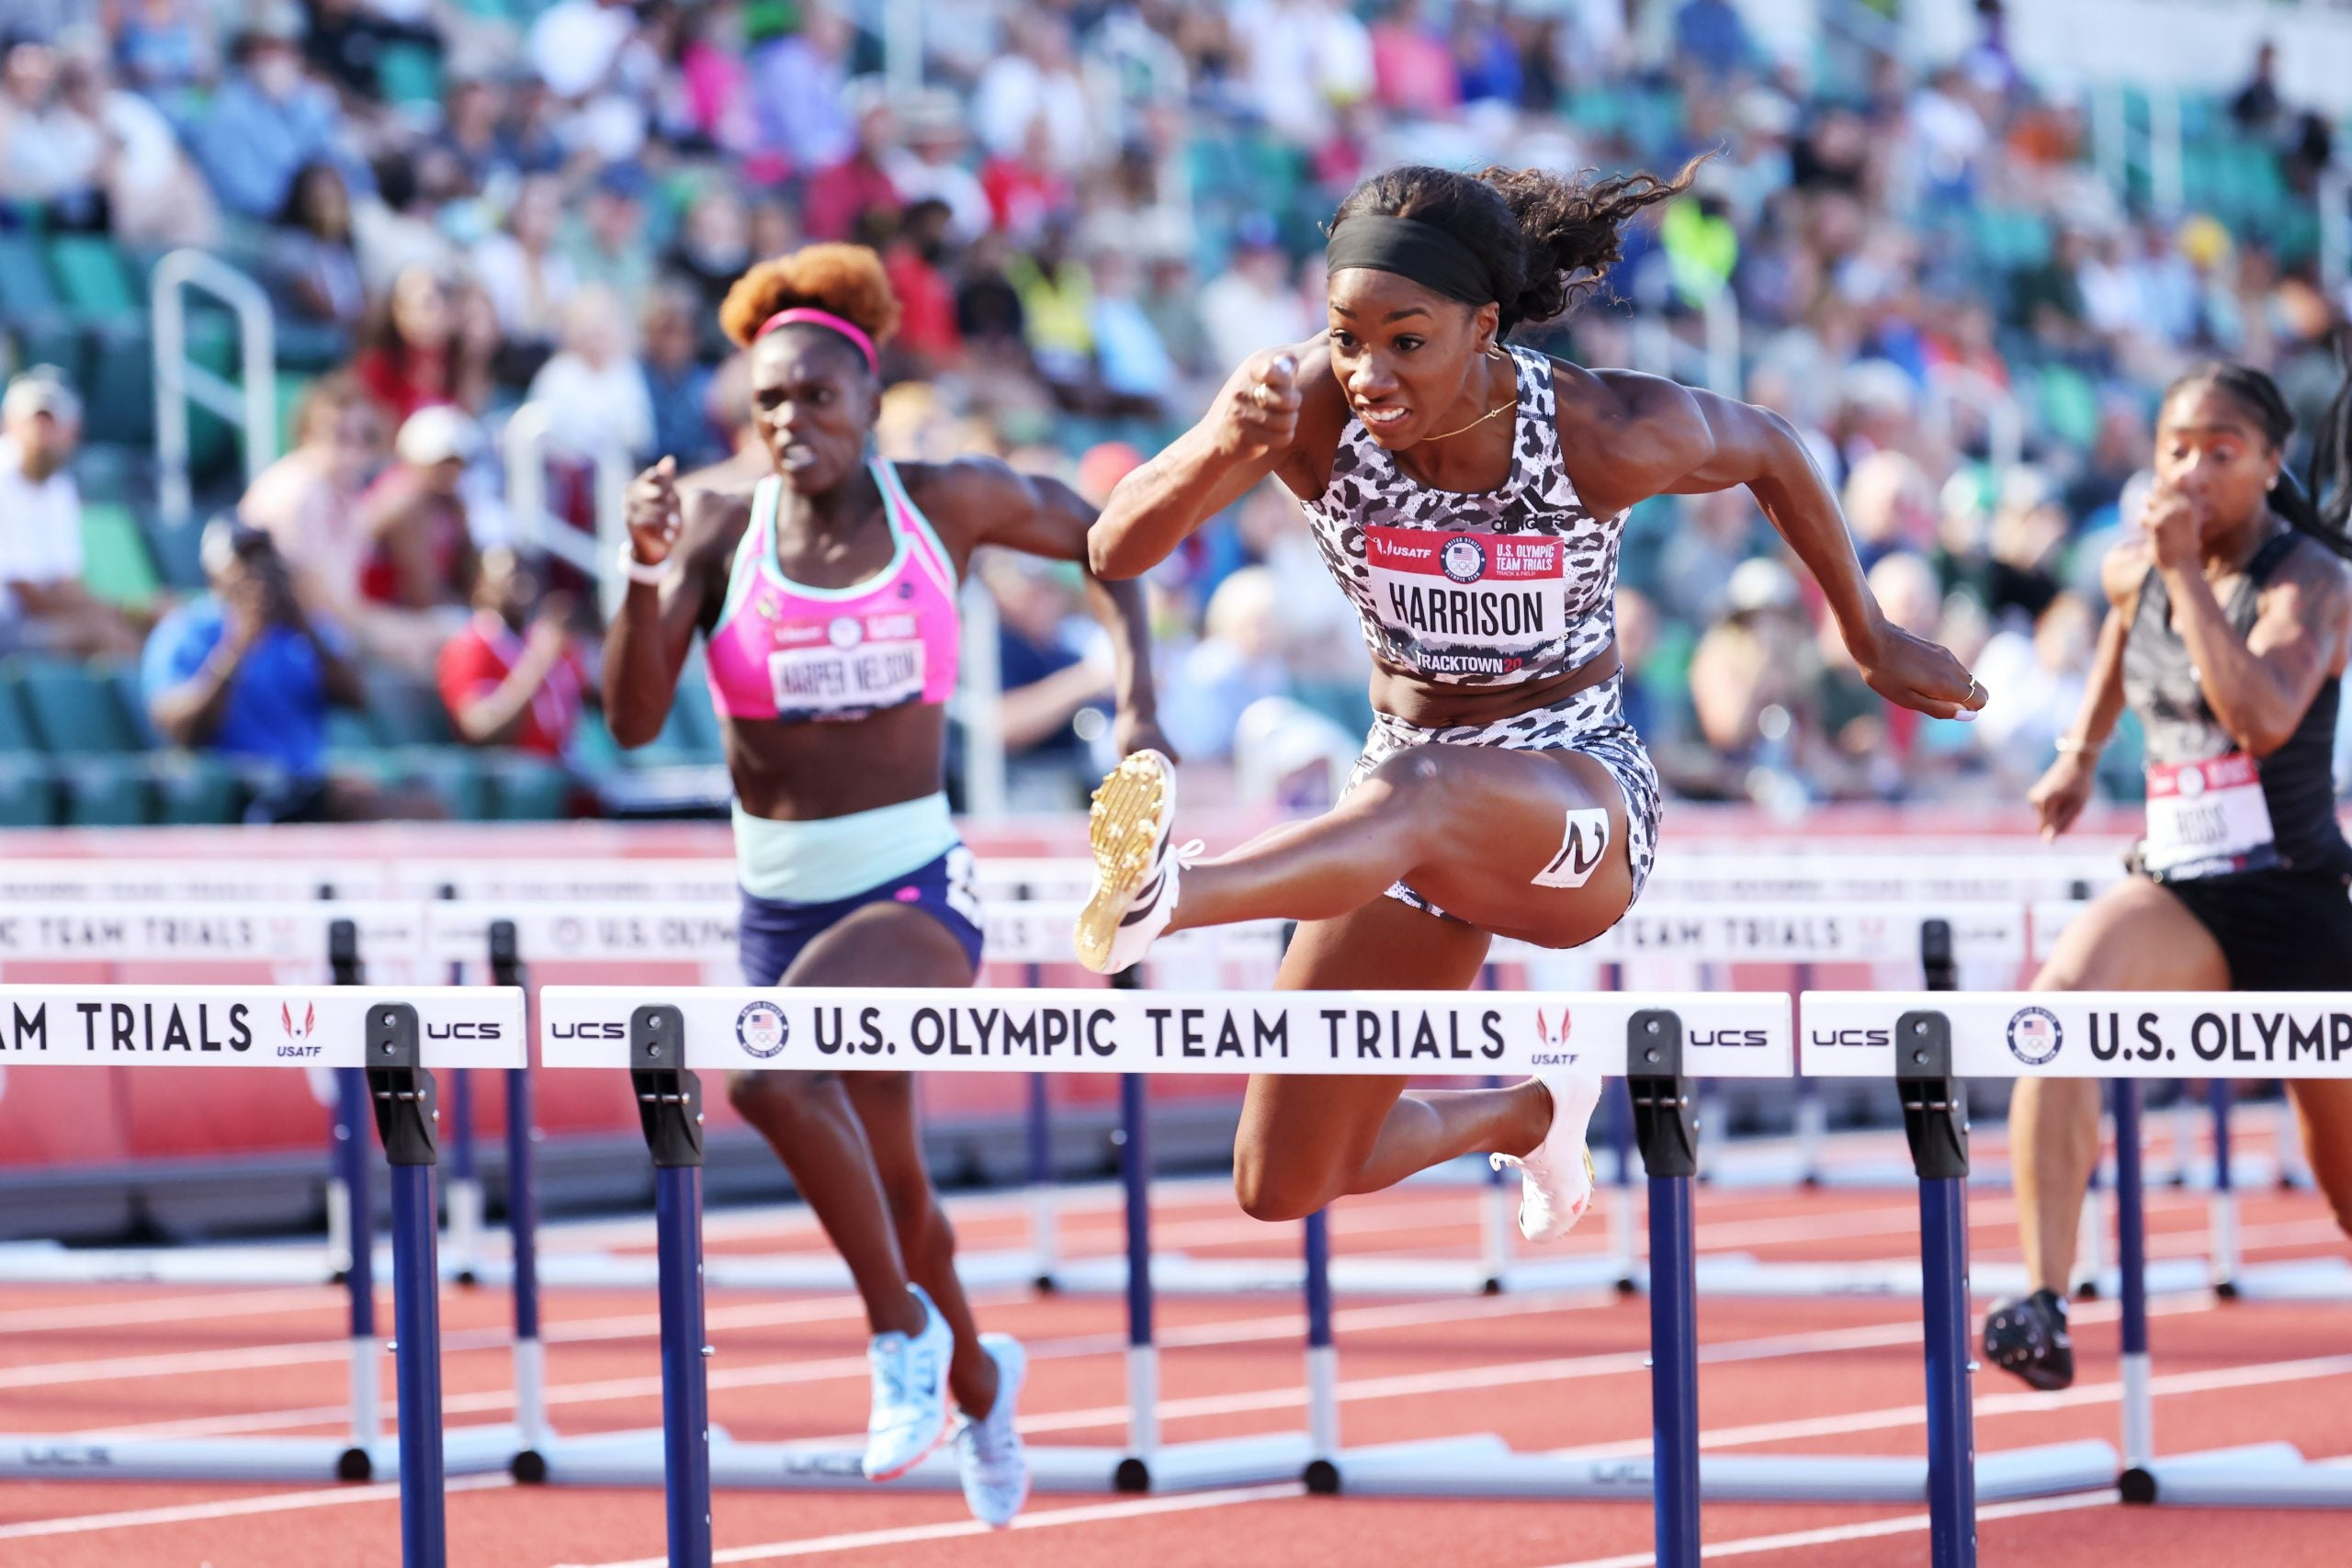 Keni Harrison leaping over a hurdle in the 100m hurdles.